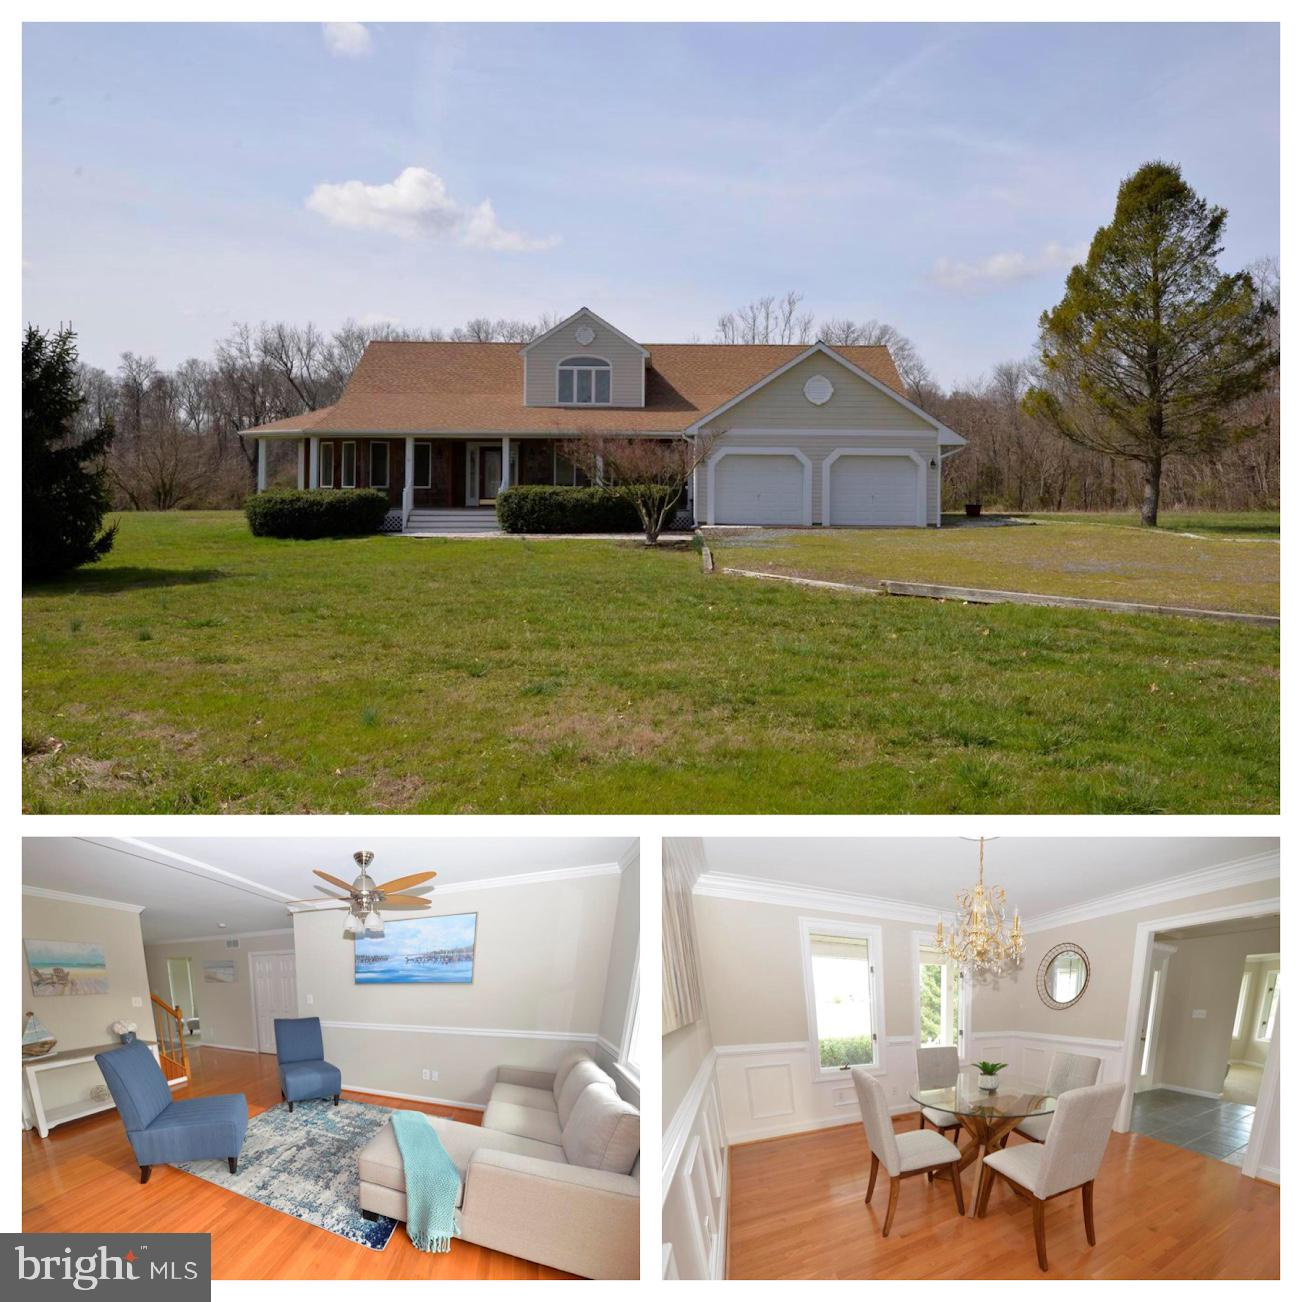 Beautiful custom two-story home situated on just over 1.5 acres surrounded by farmland and woods wit